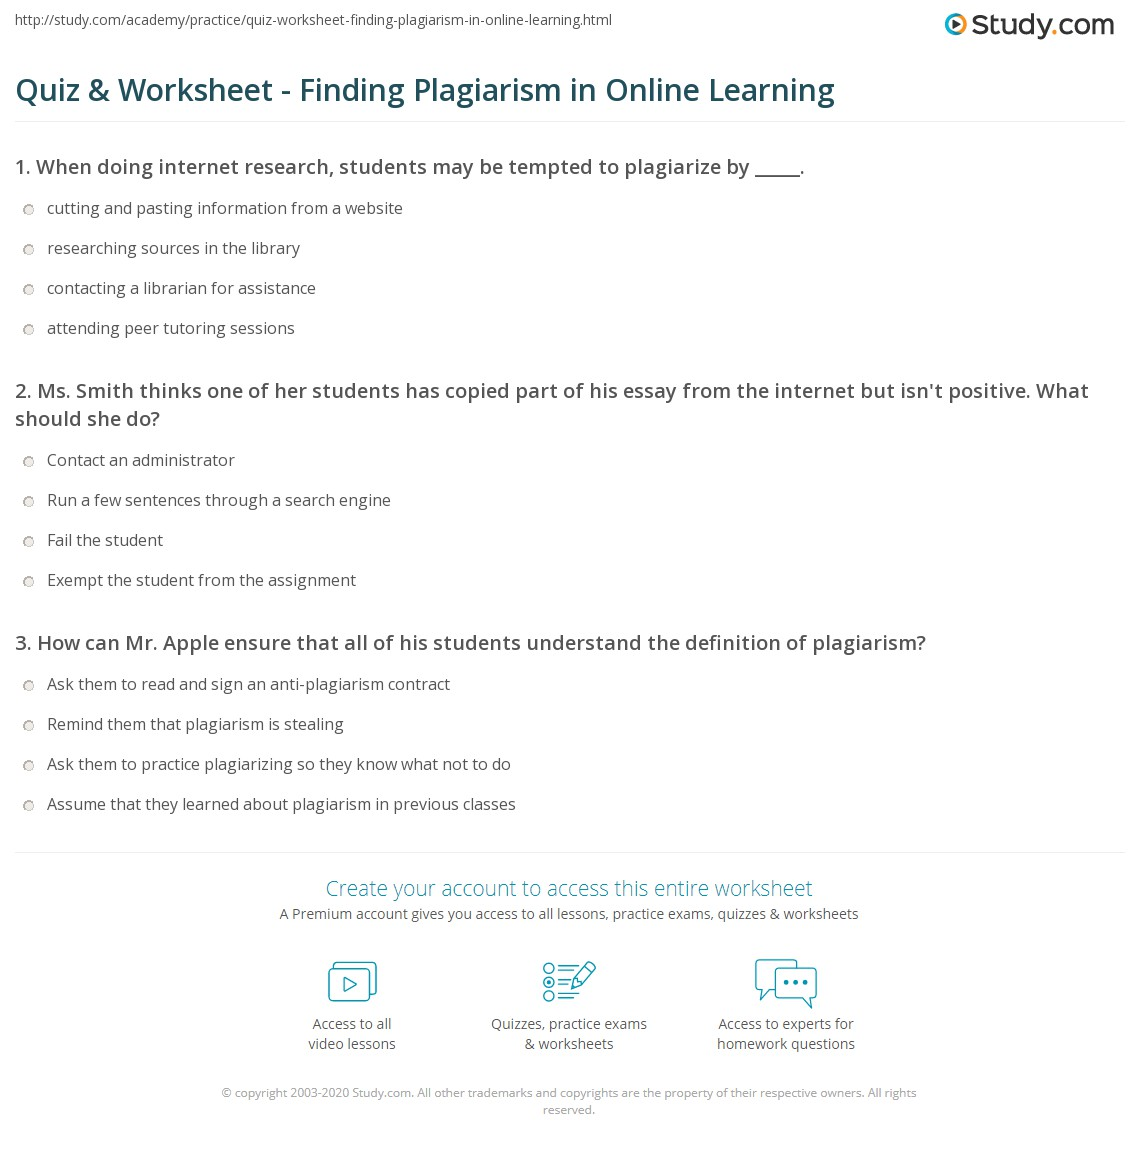 quiz worksheet finding plagiarism in online learning com print identifying preventing plagiarism in online learning worksheet